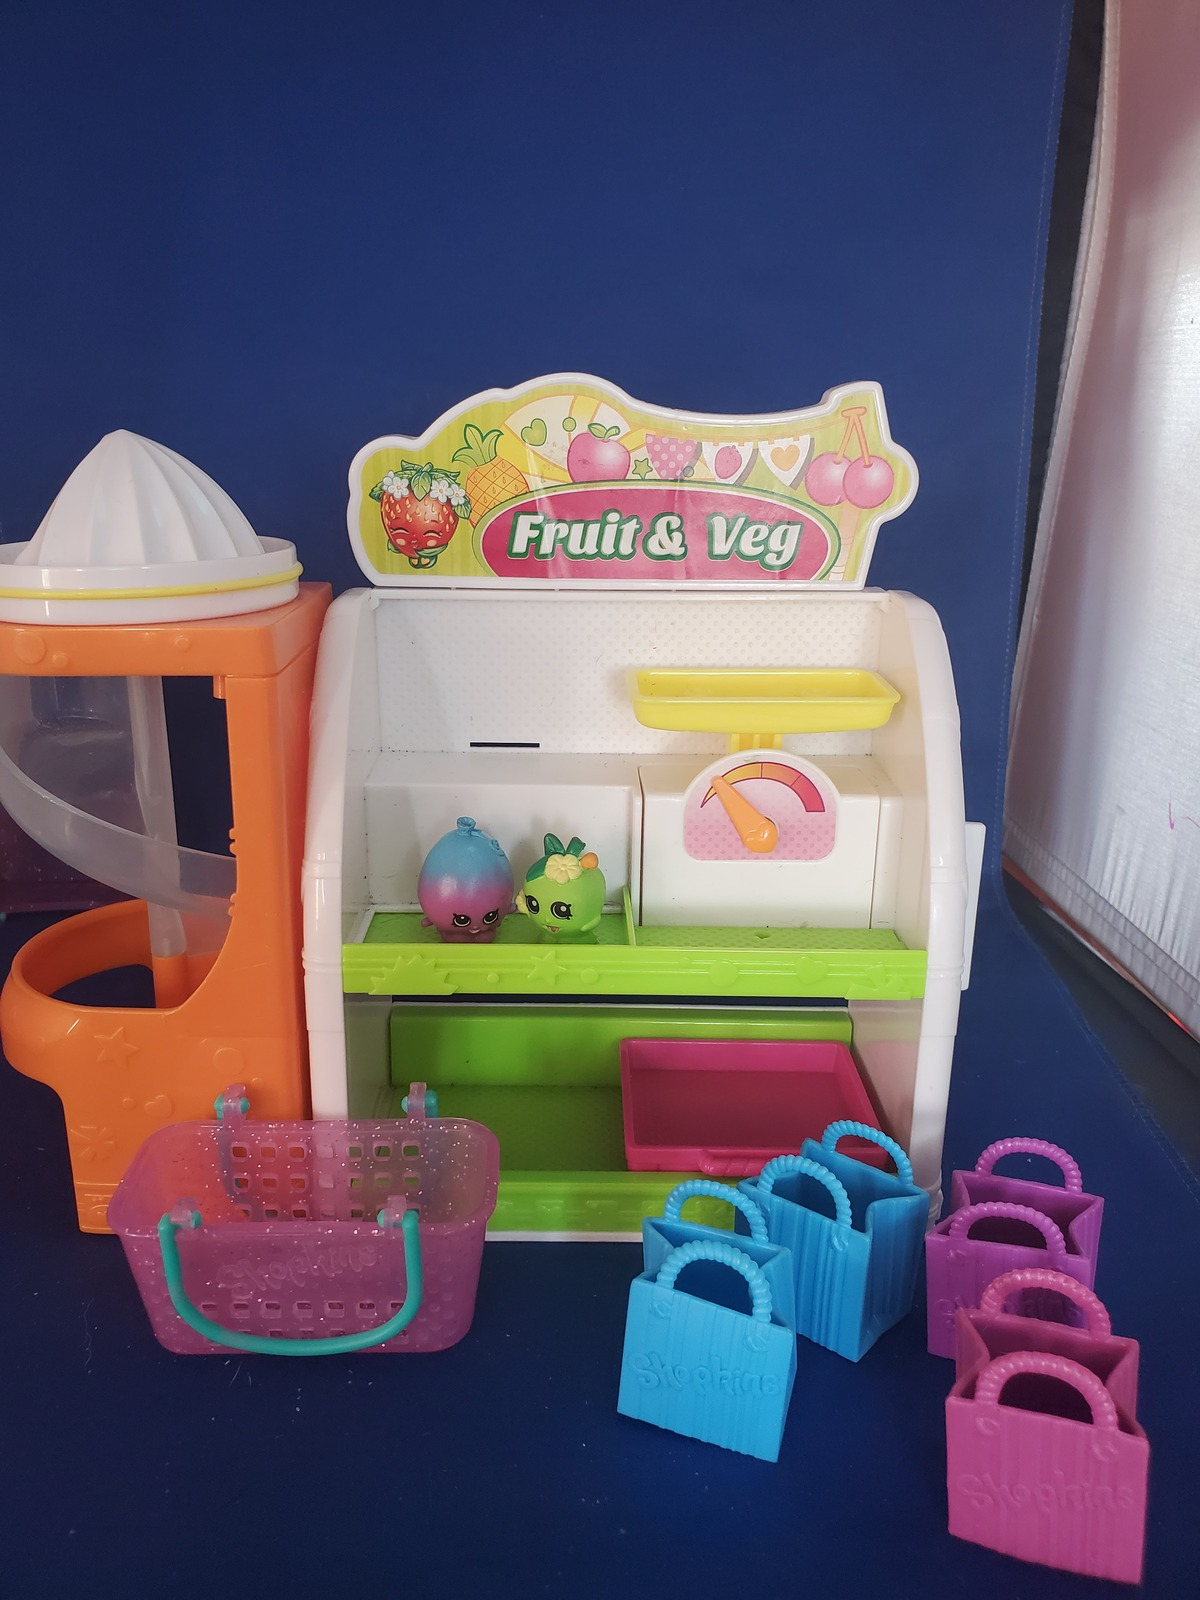 Shopkins Easy Squeezy Fruit & Veg Stand Playset  - $12.00